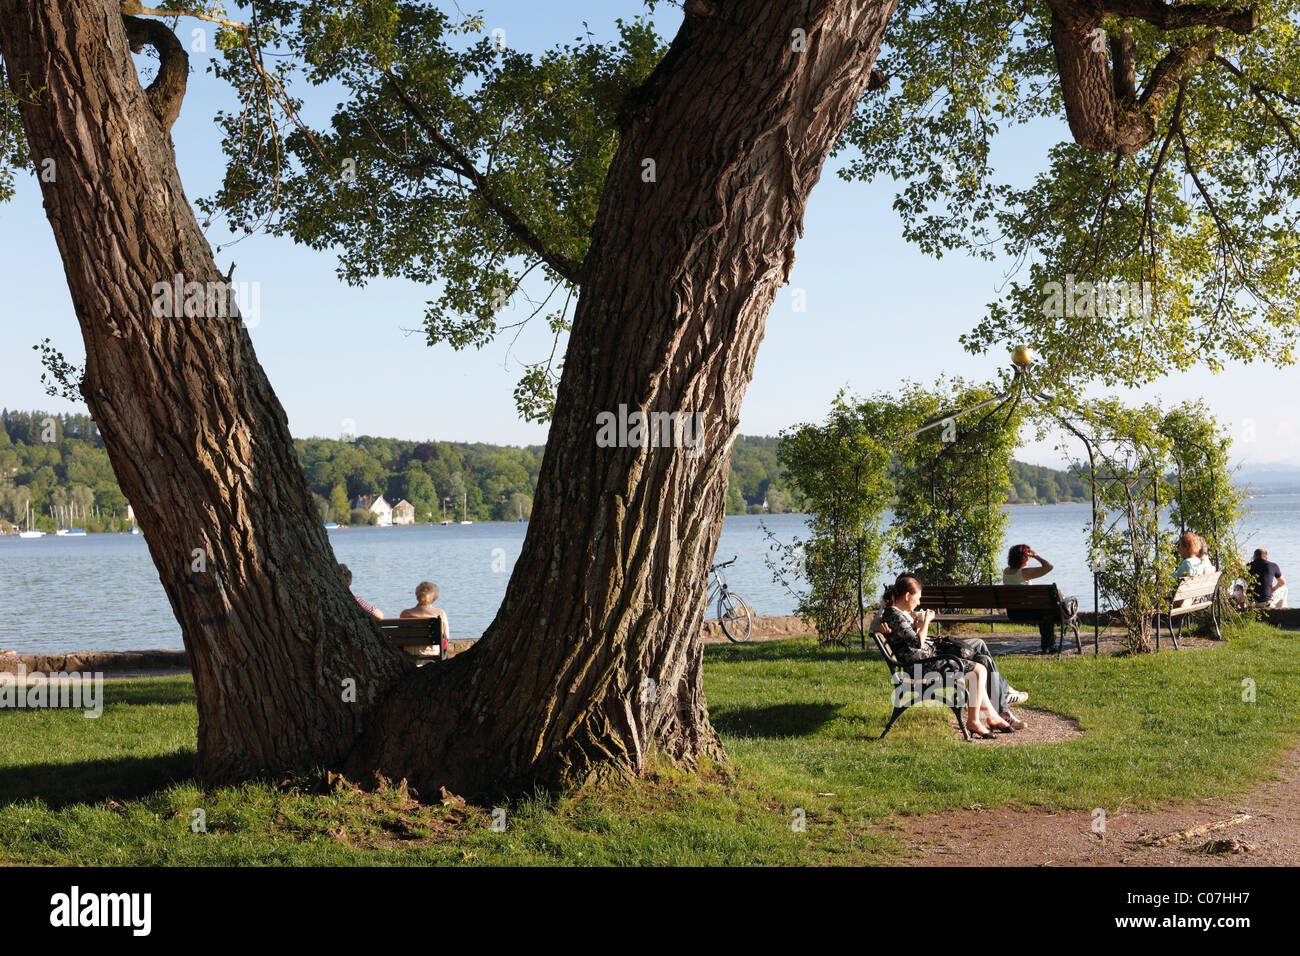 Lakeshore in Herschinger, Ammersee lake, Fuenfseenland or Five Lakes region, Upper Bavaria, Bavaria, Germany, Europe - Stock Image